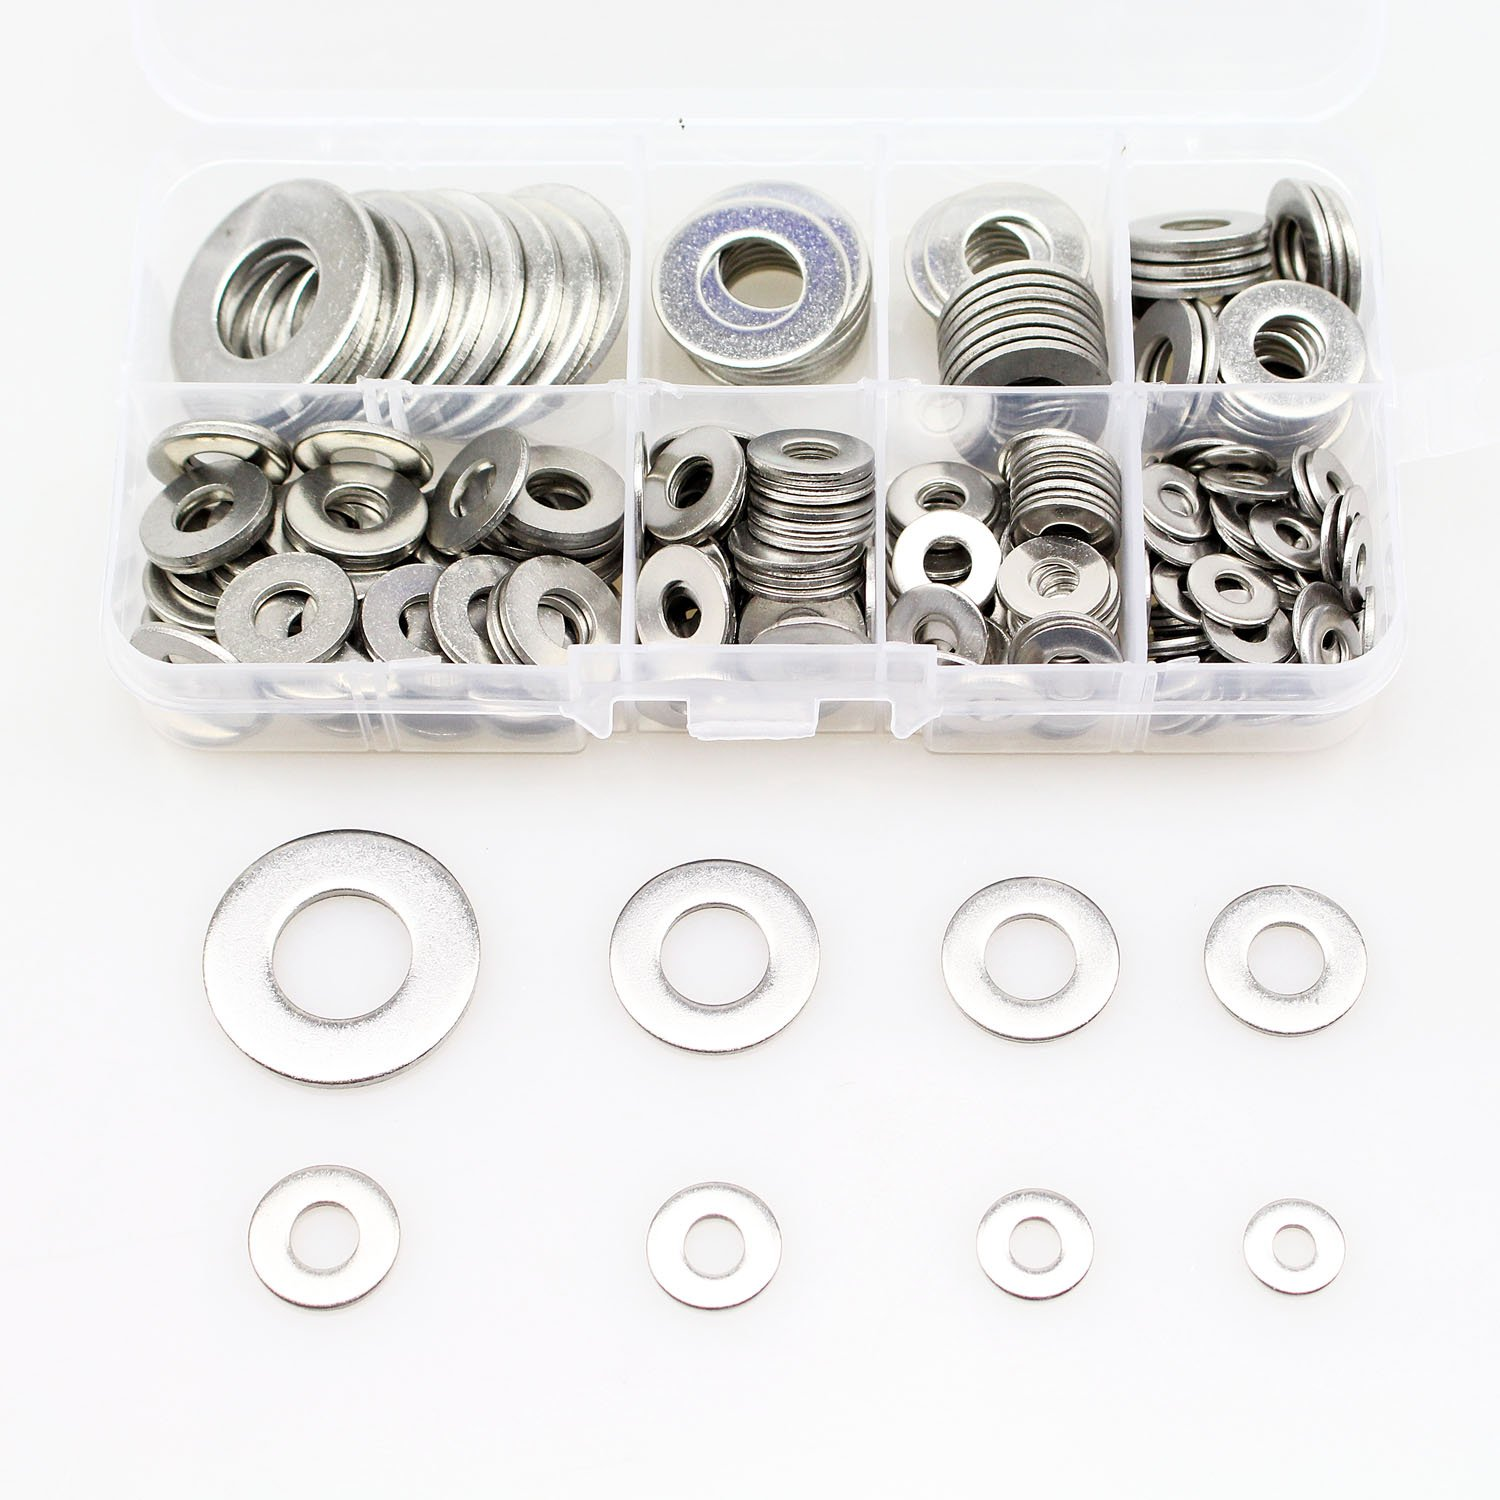 Sutemribor 260Pcs 8 Sizes Stainless Steel Flat Washers, 1/2 3/8 5/16 1/4 12# 10# 8# 6# Hardware Gasket Assortment Kit